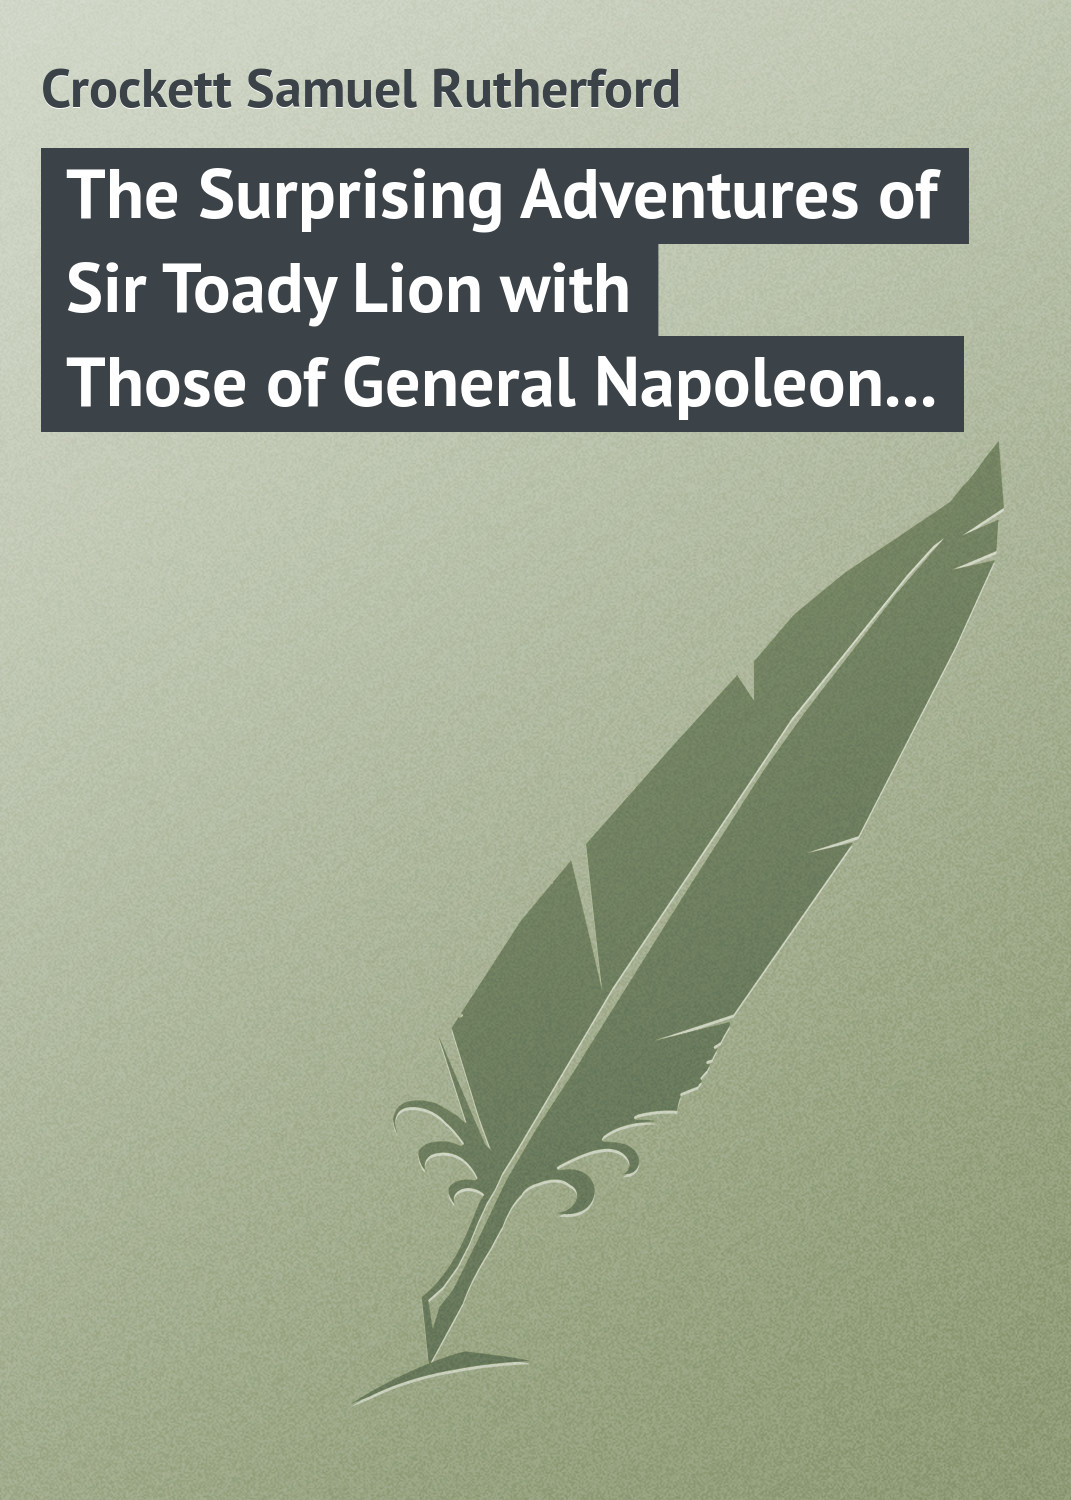 Crockett Samuel Rutherford The Surprising Adventures of Sir Toady Lion with Those of General Napoleon Smith